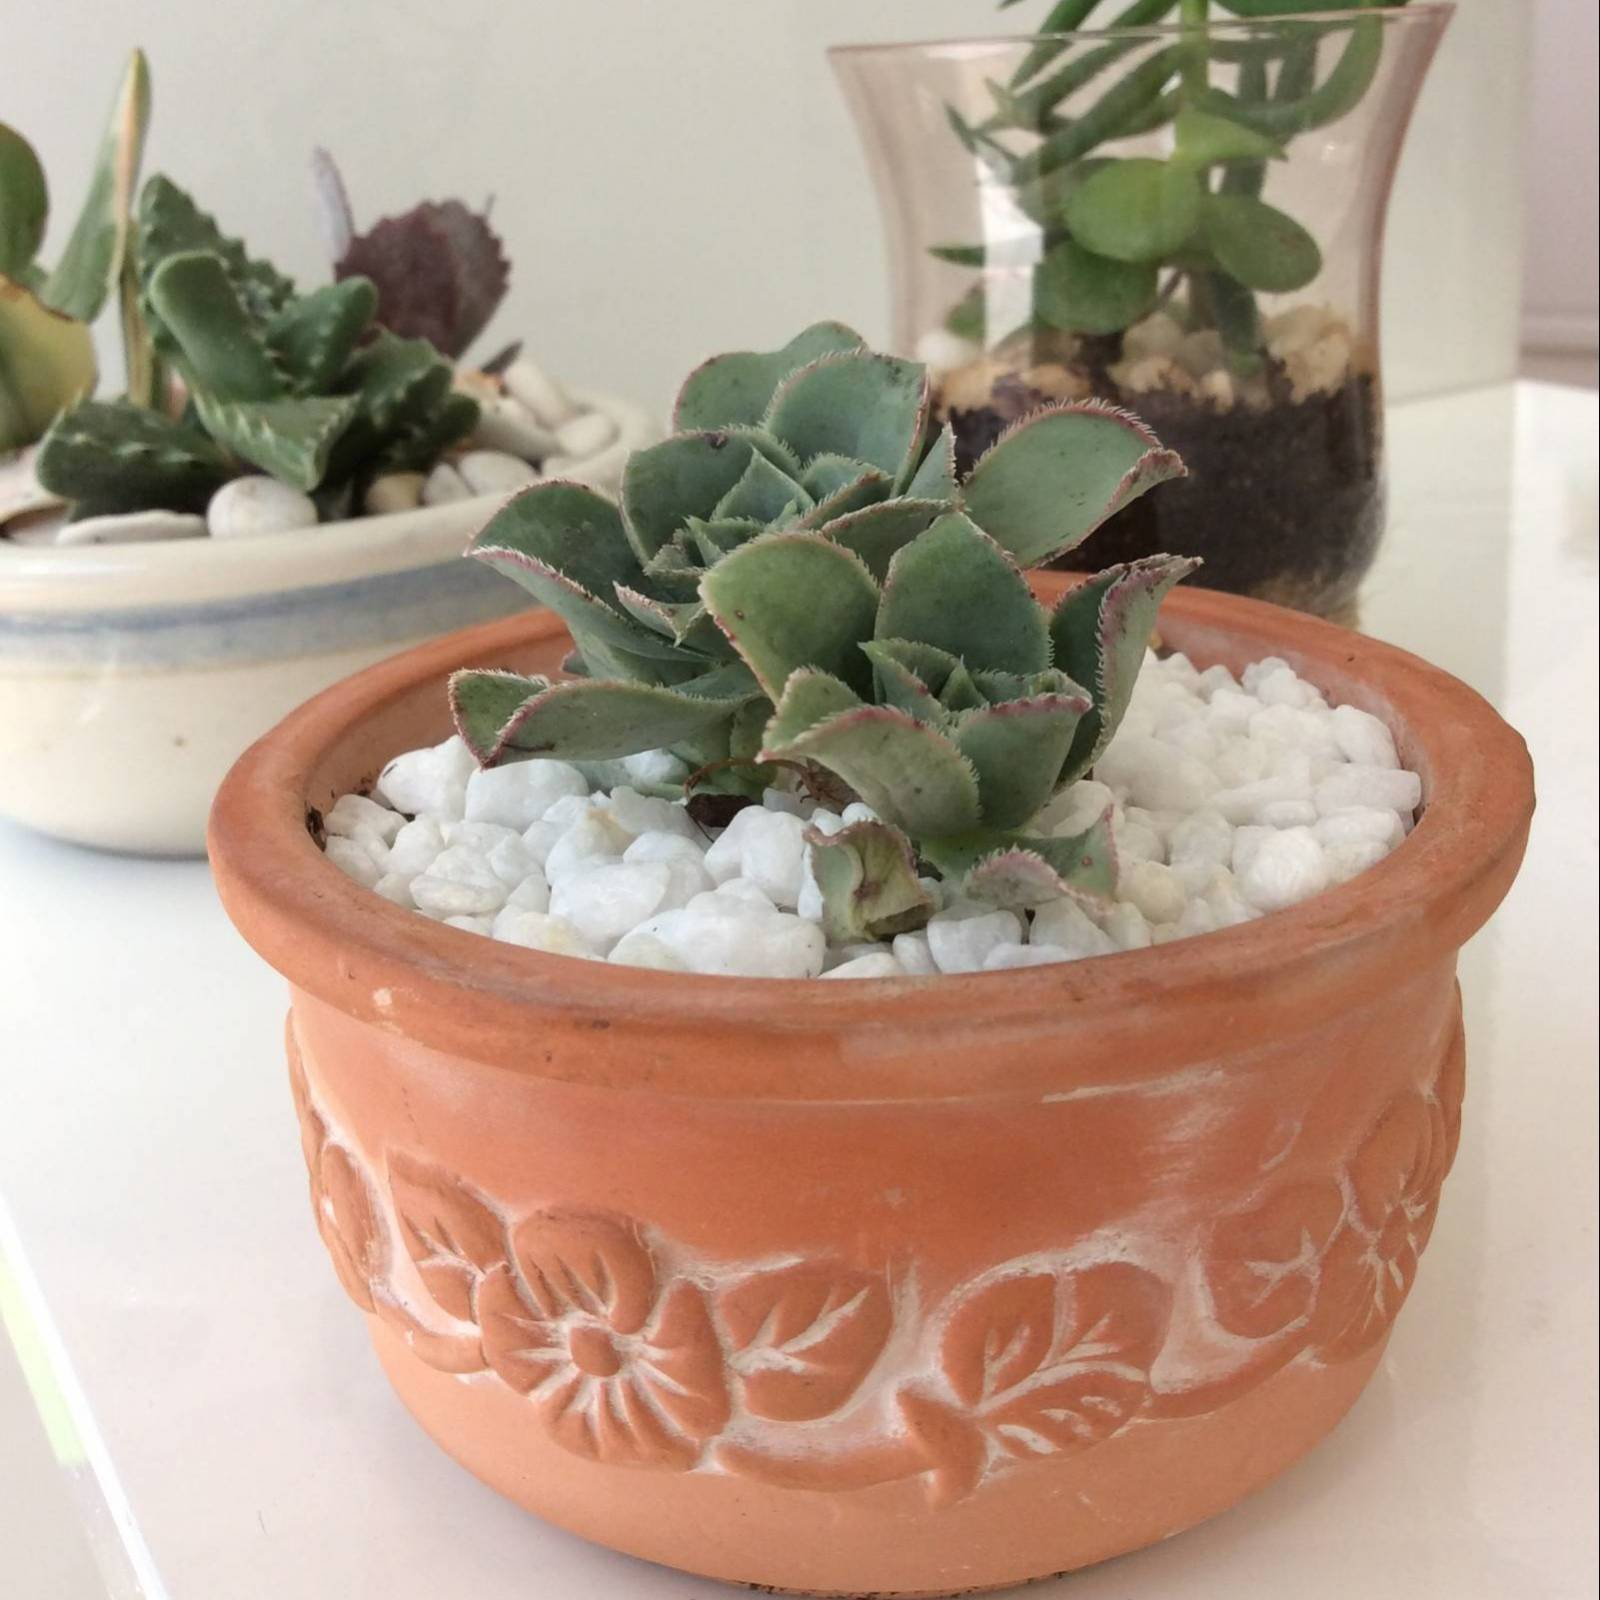 small terracotta pot with a planted succulent inside.